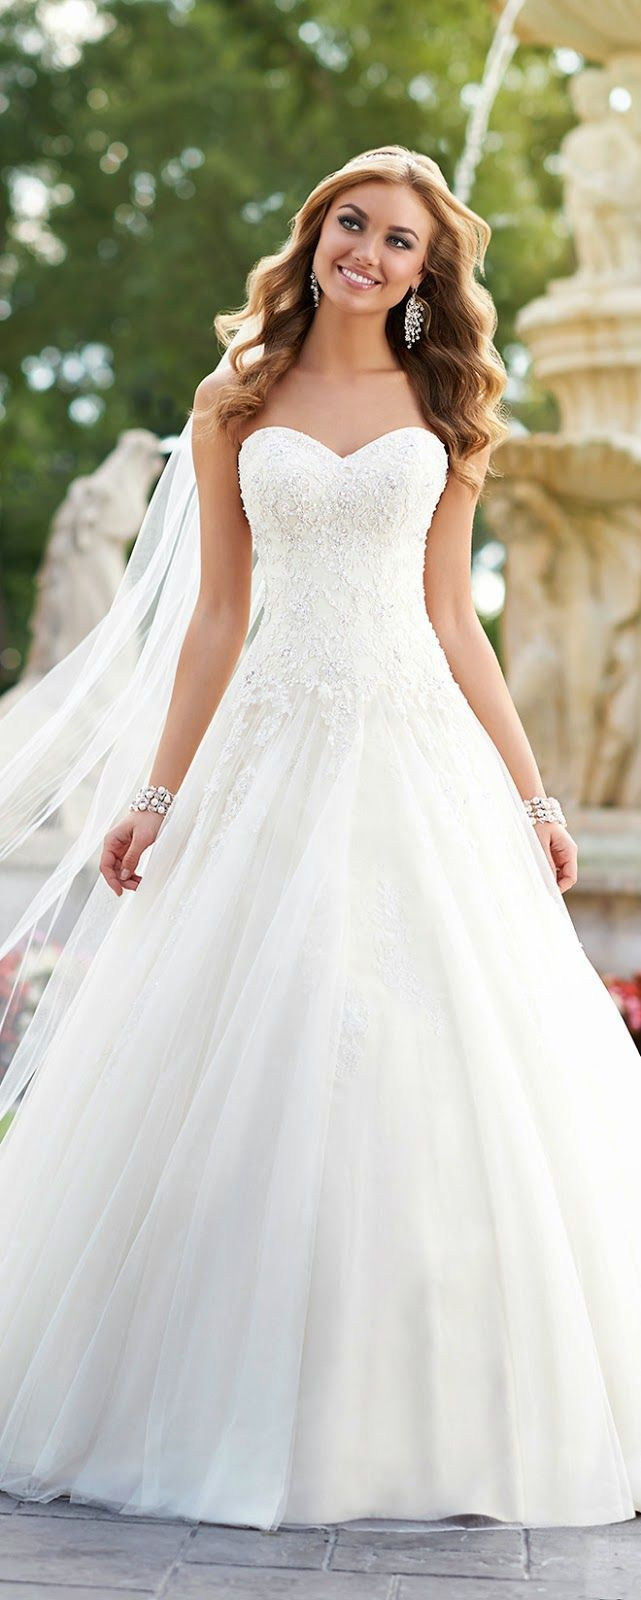 Stella York Fall 2015 Bridal Collection : Special Preview | http://bellethemagazine.com